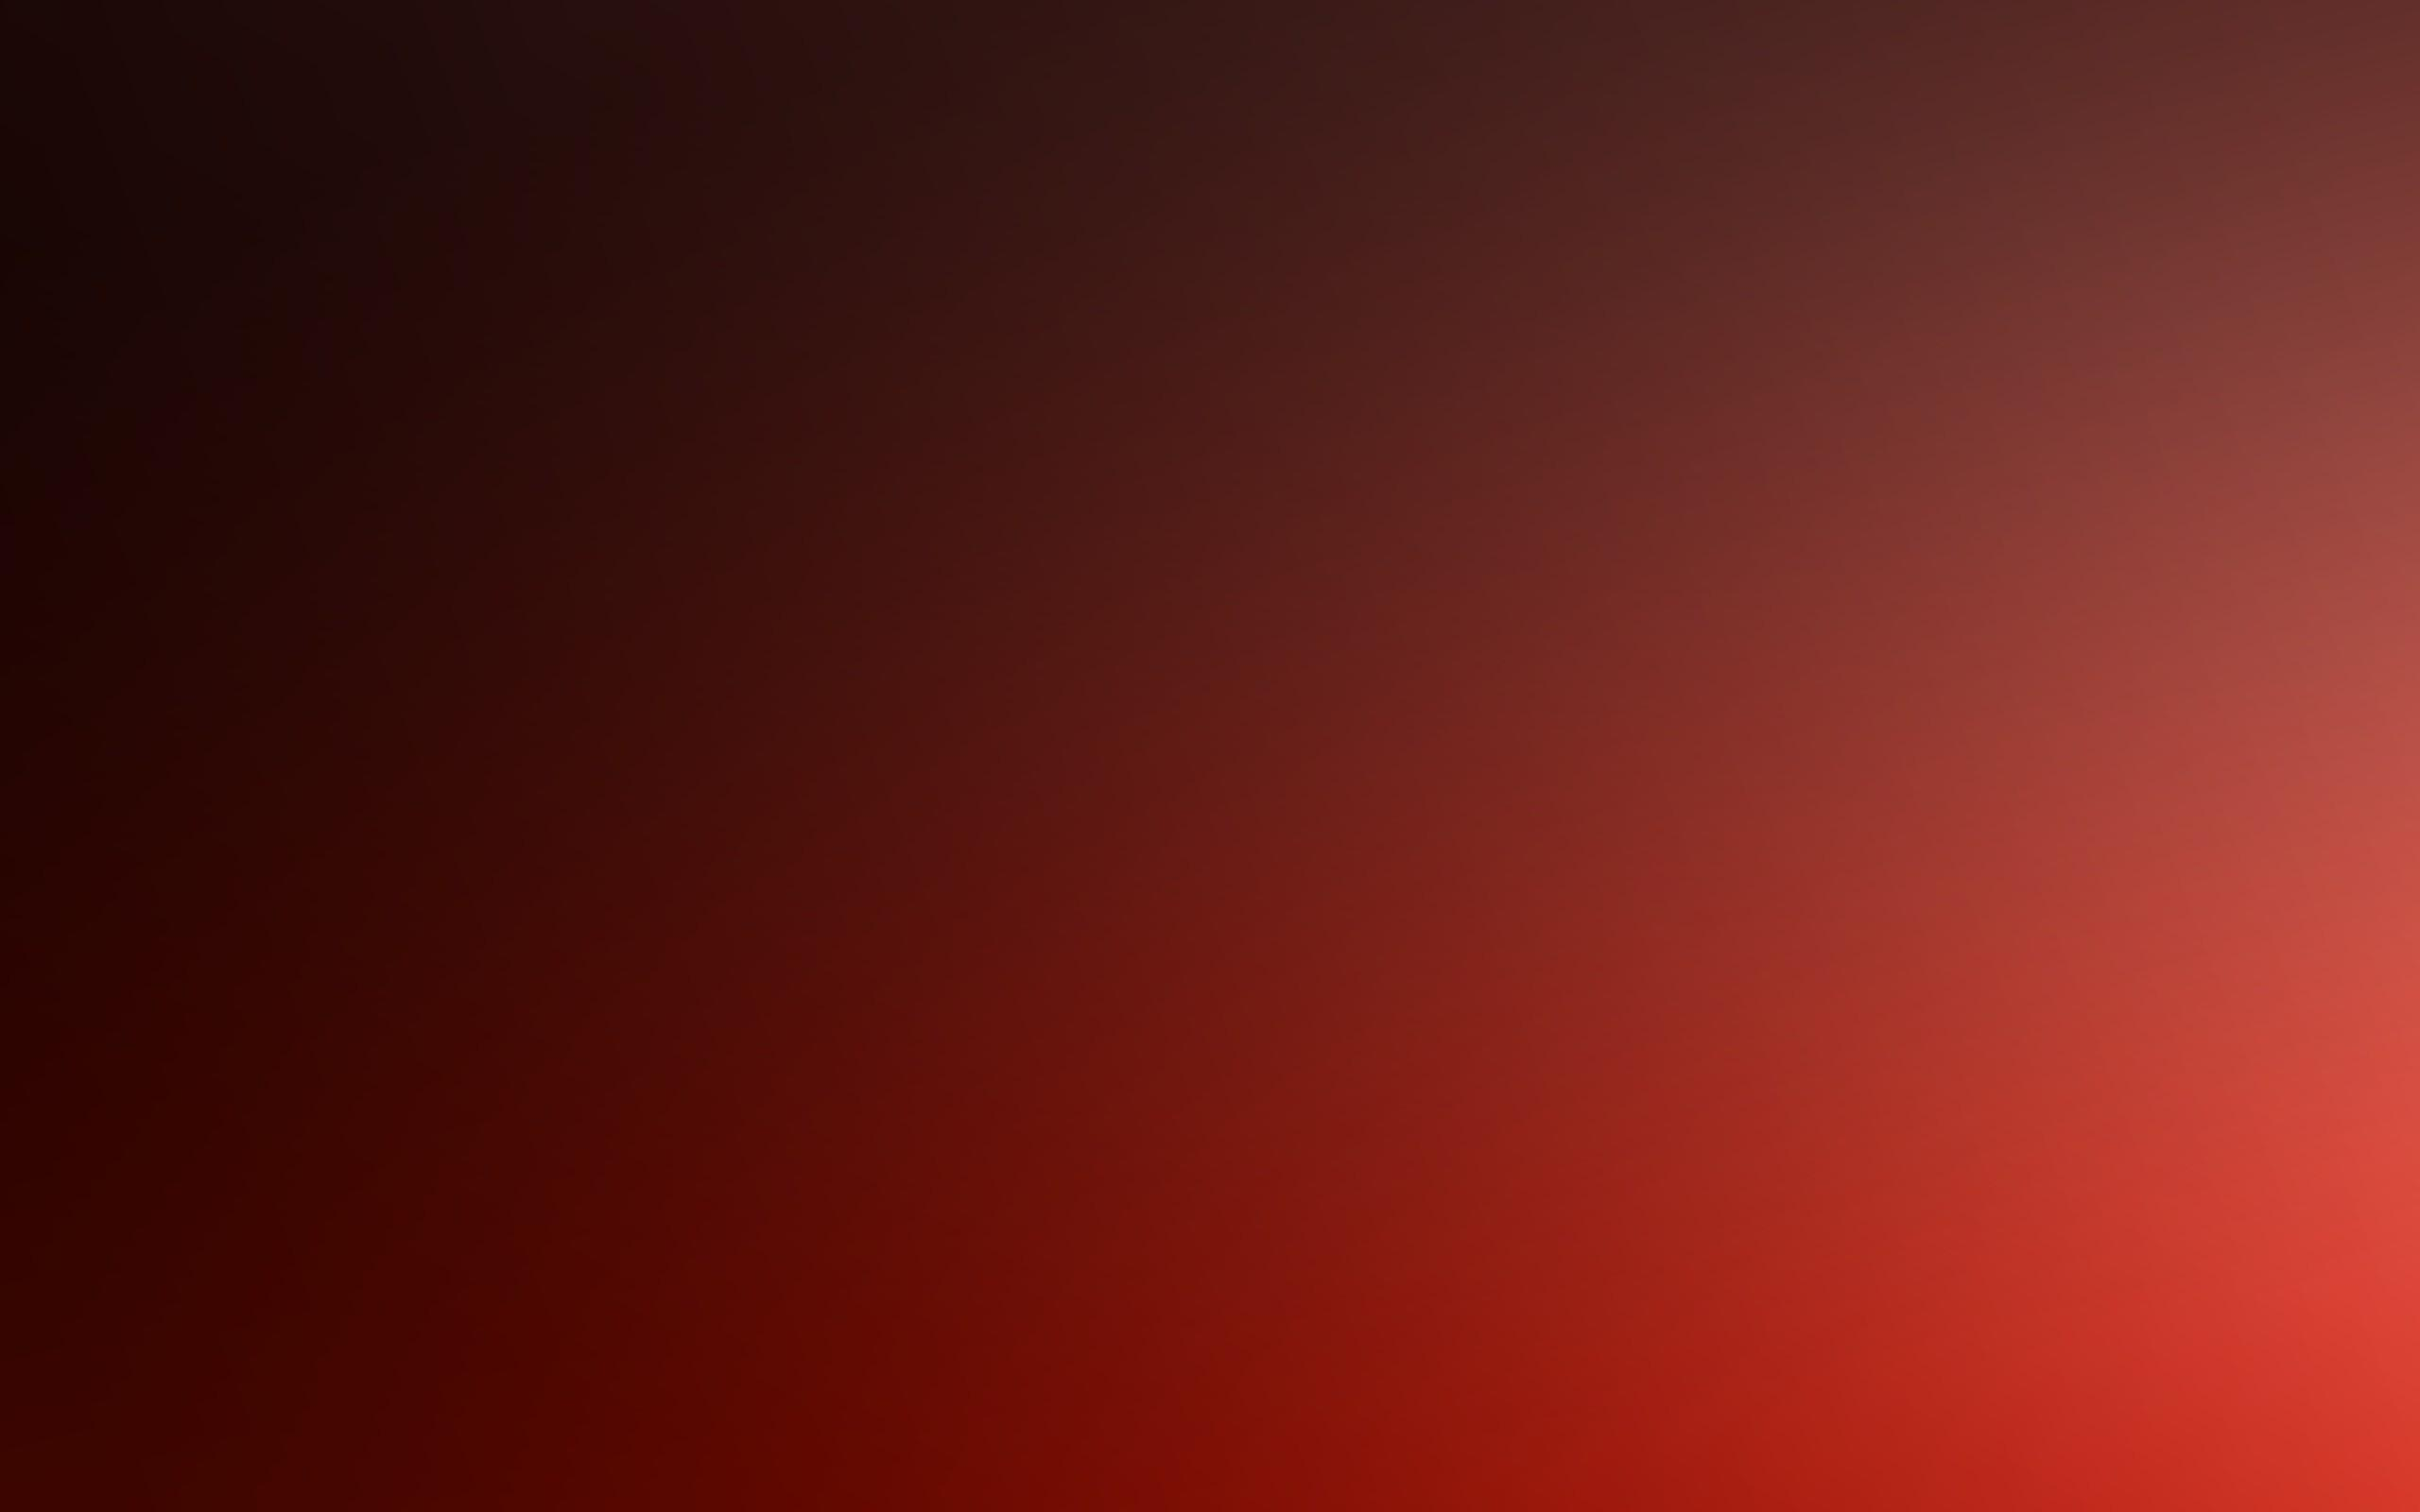 Dark Red Wallpapers 2560x1600